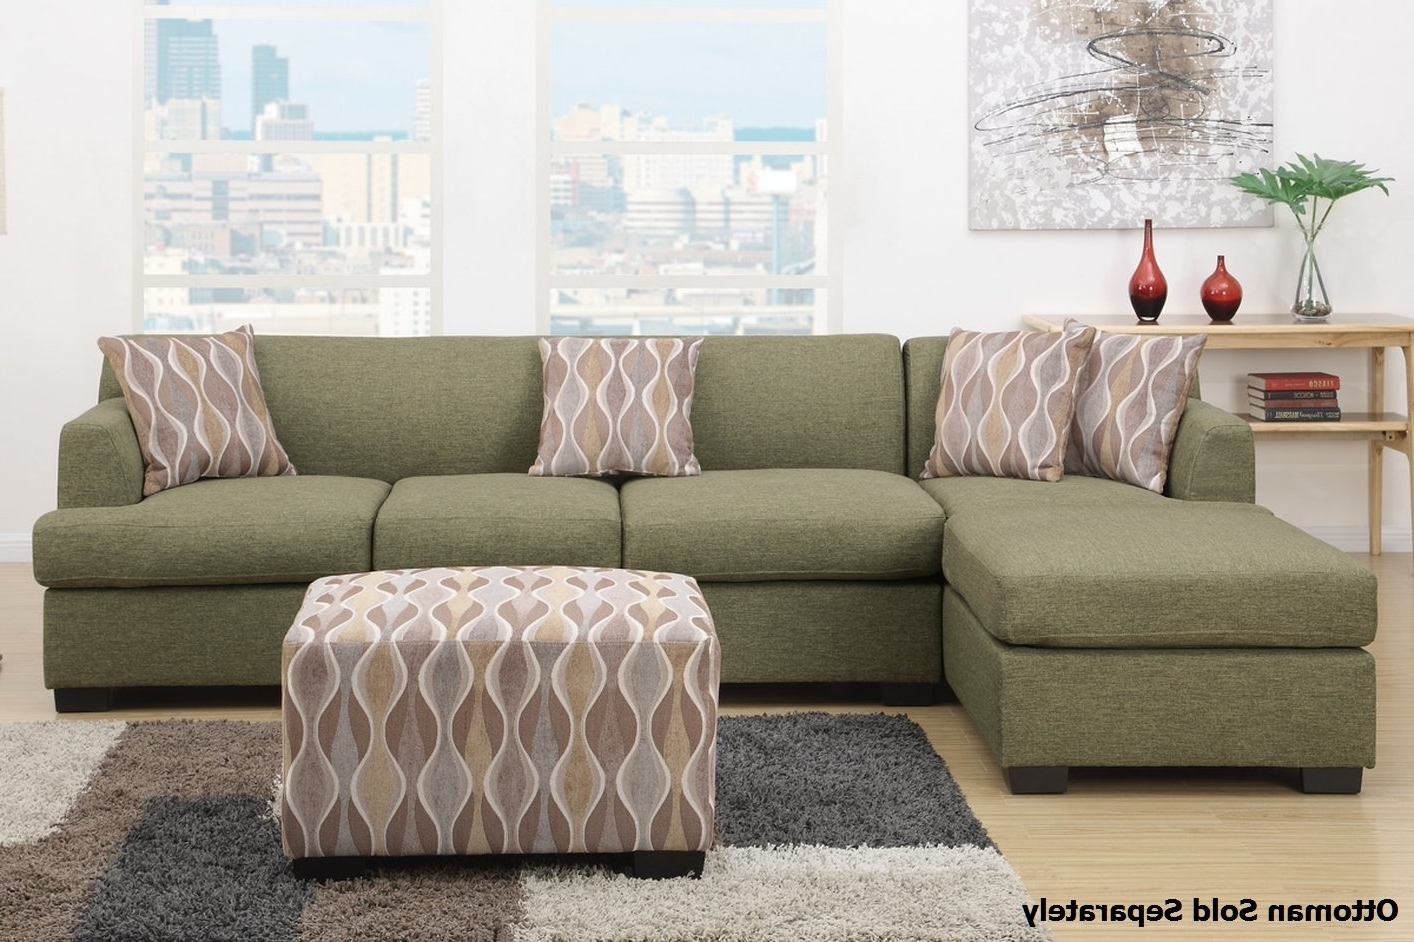 2018 Montreal Iii Green Fabric Sectional Sofa – Steal A Sofa Furniture Inside Montreal Sectional Sofas (View 2 of 20)